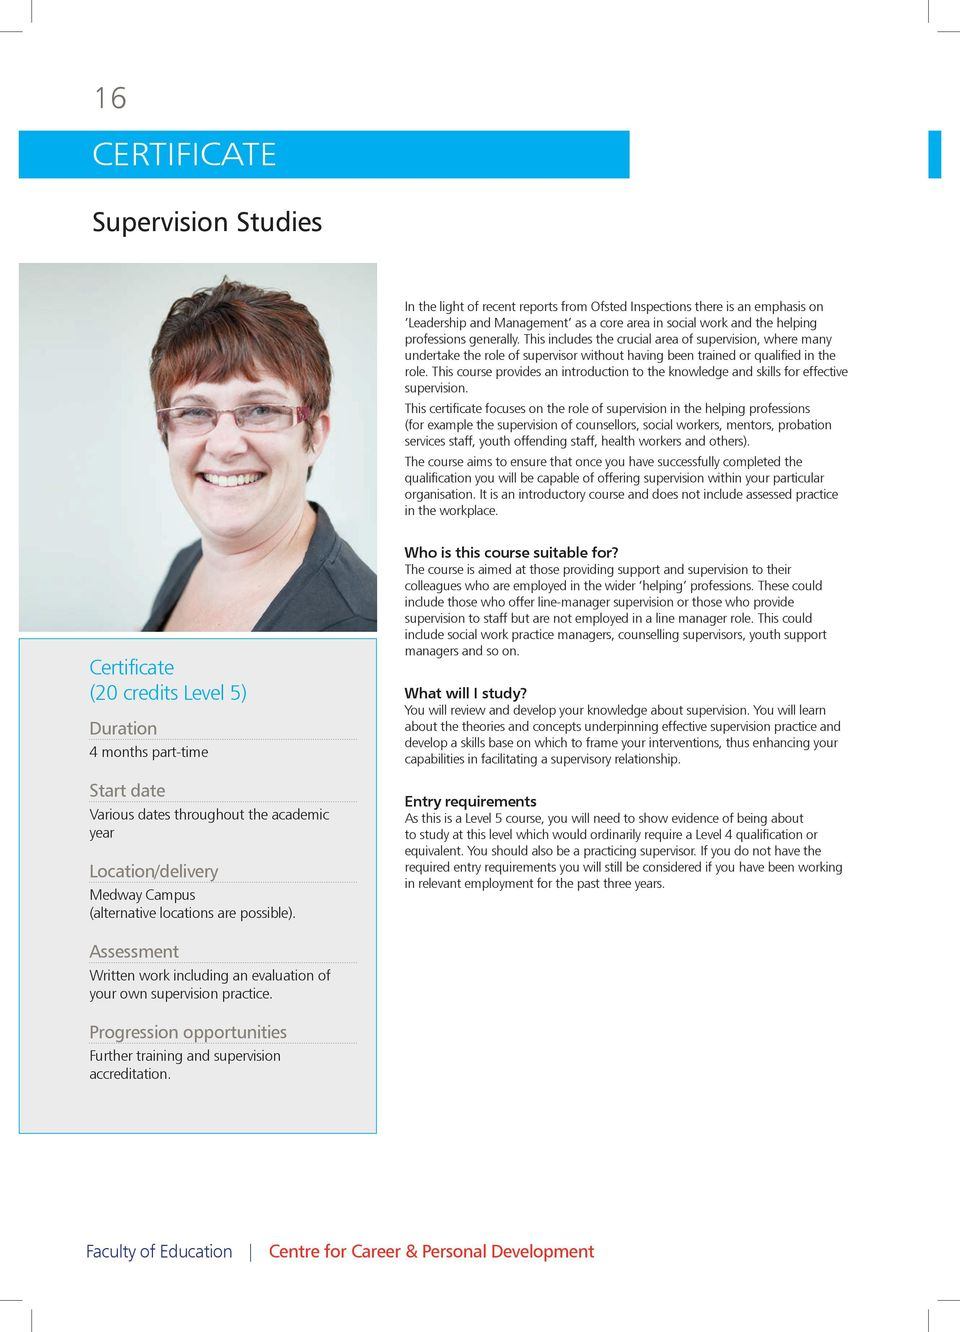 This course provides an introduction to the knowledge and skills for effective supervision.